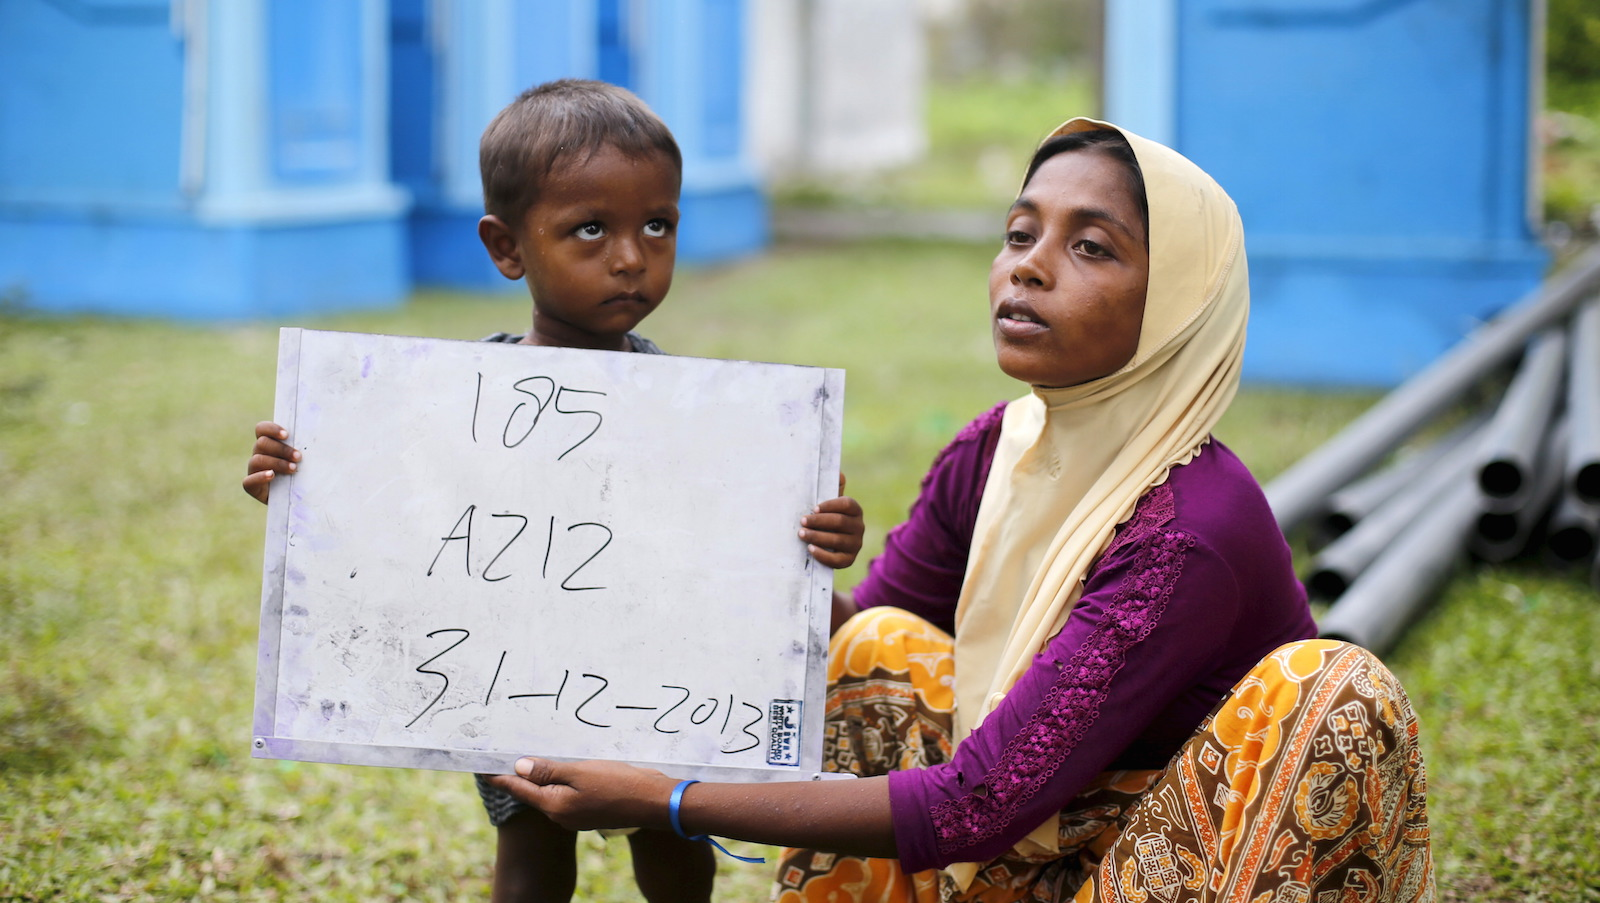 A Rohingya migrant mother (R) and her child, who recently arrived in Indonesia by boat, hold a placard while posing for photographs for immigration identification purposes inside a temporary compound for refugees in Aceh Timur regency